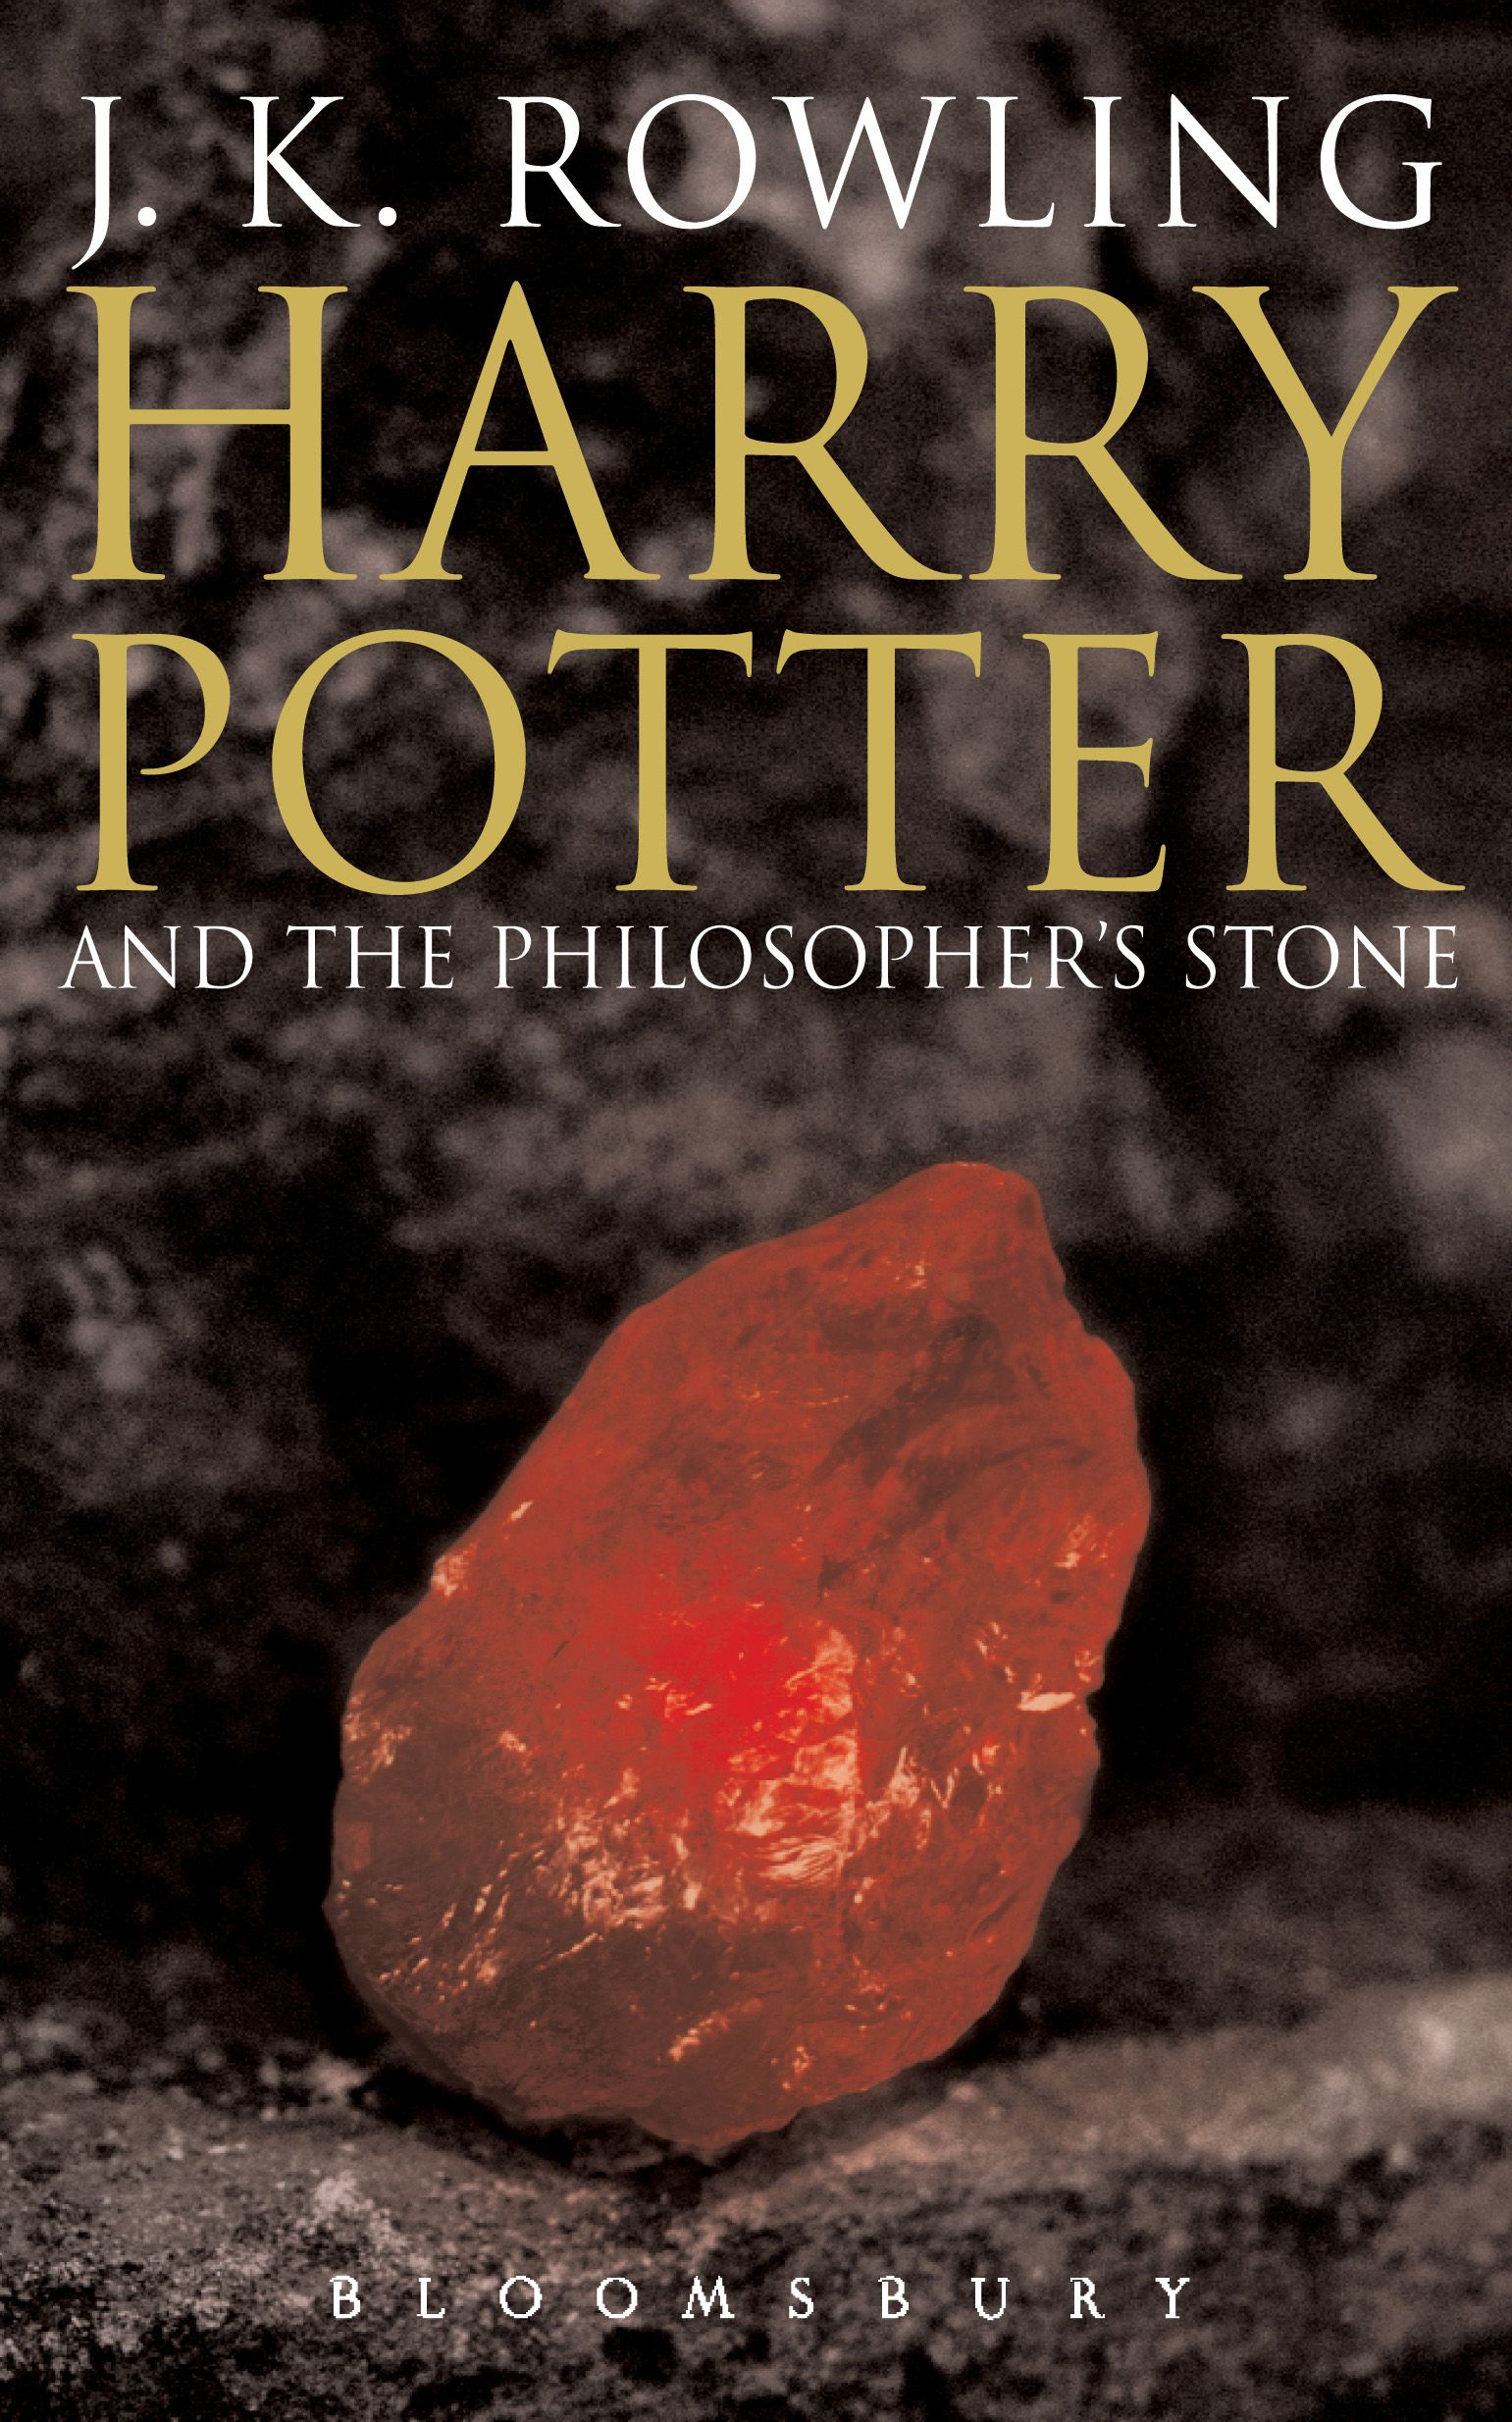 Book Cover Art Search : Book harry potter and the philosopher s stone cover